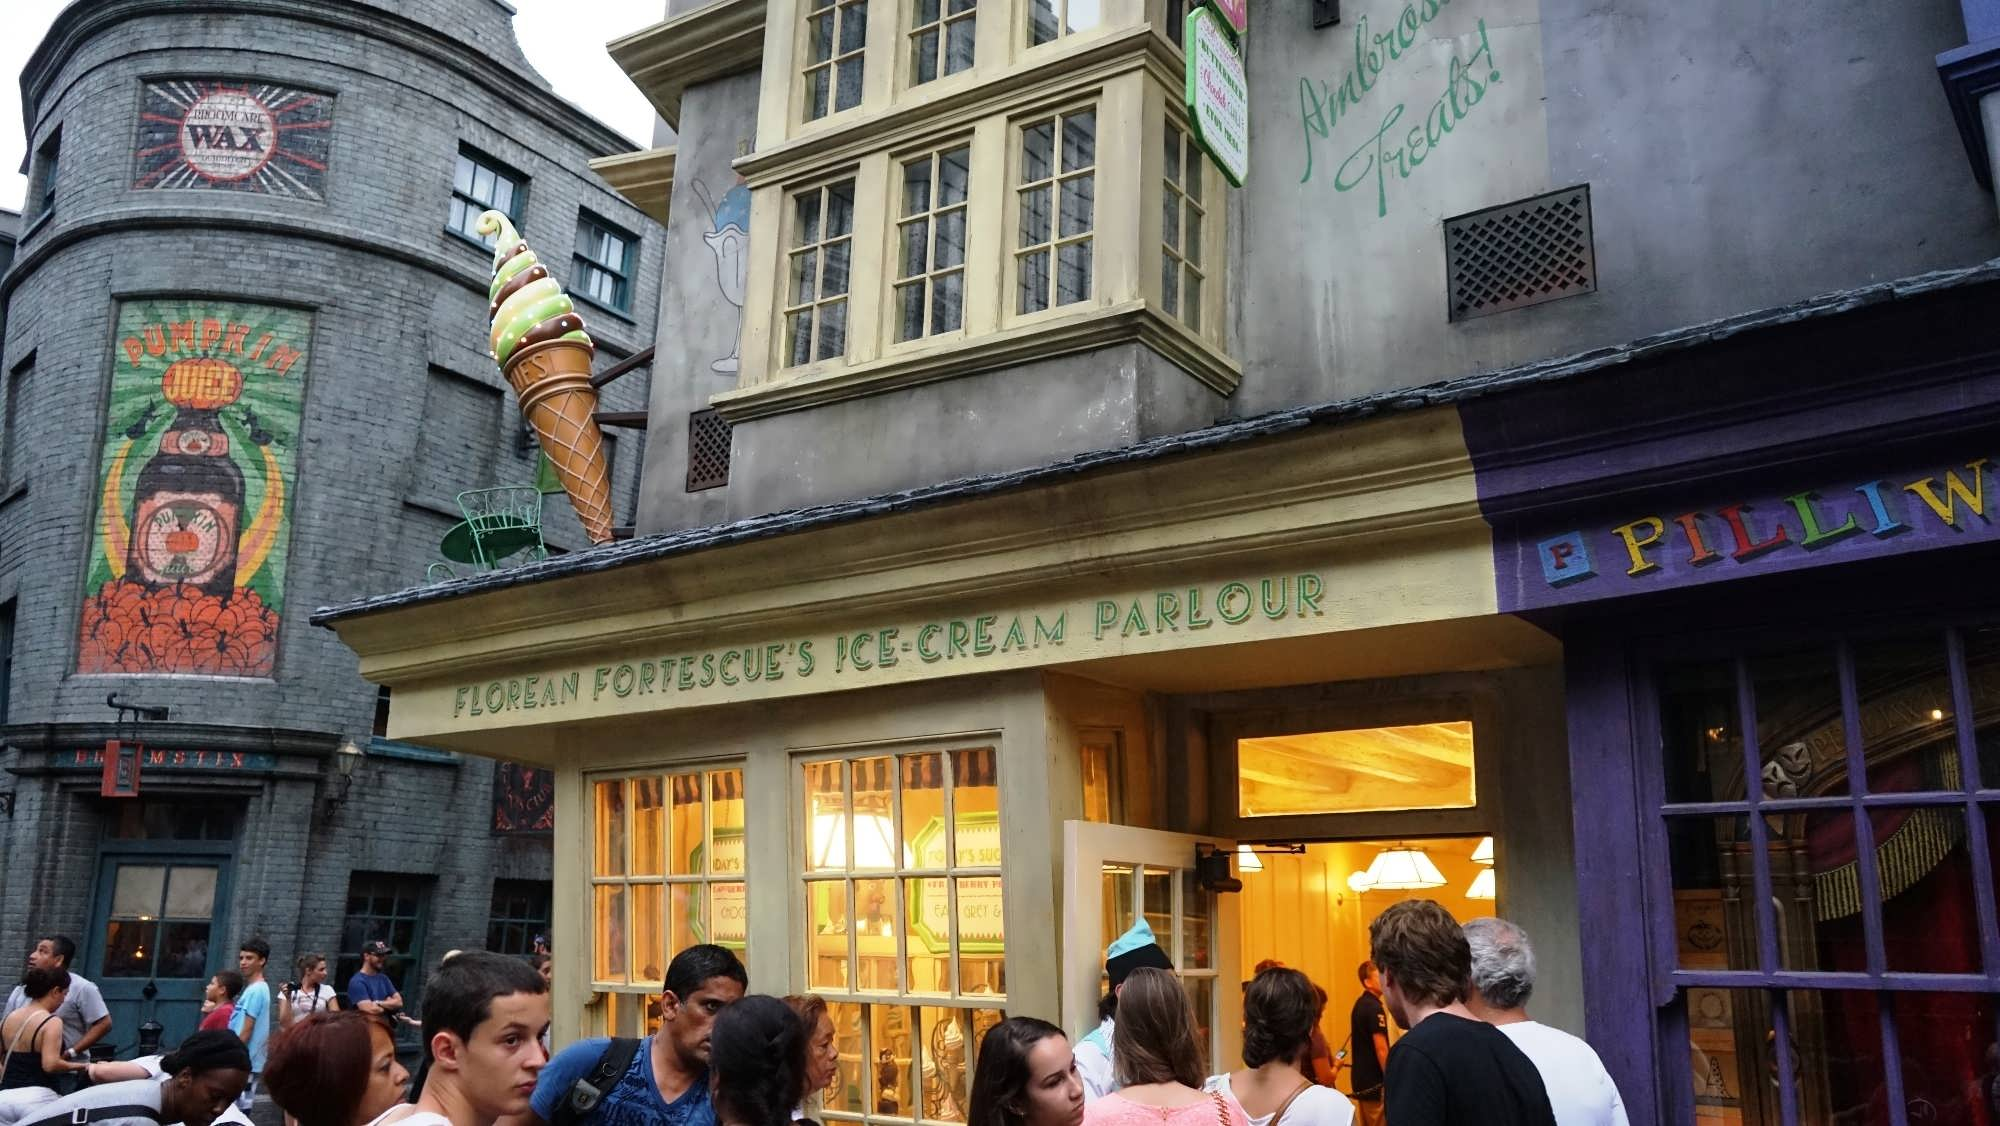 Florean Fortescue's Ice-Cream Parlor at Universal Studios Florida.